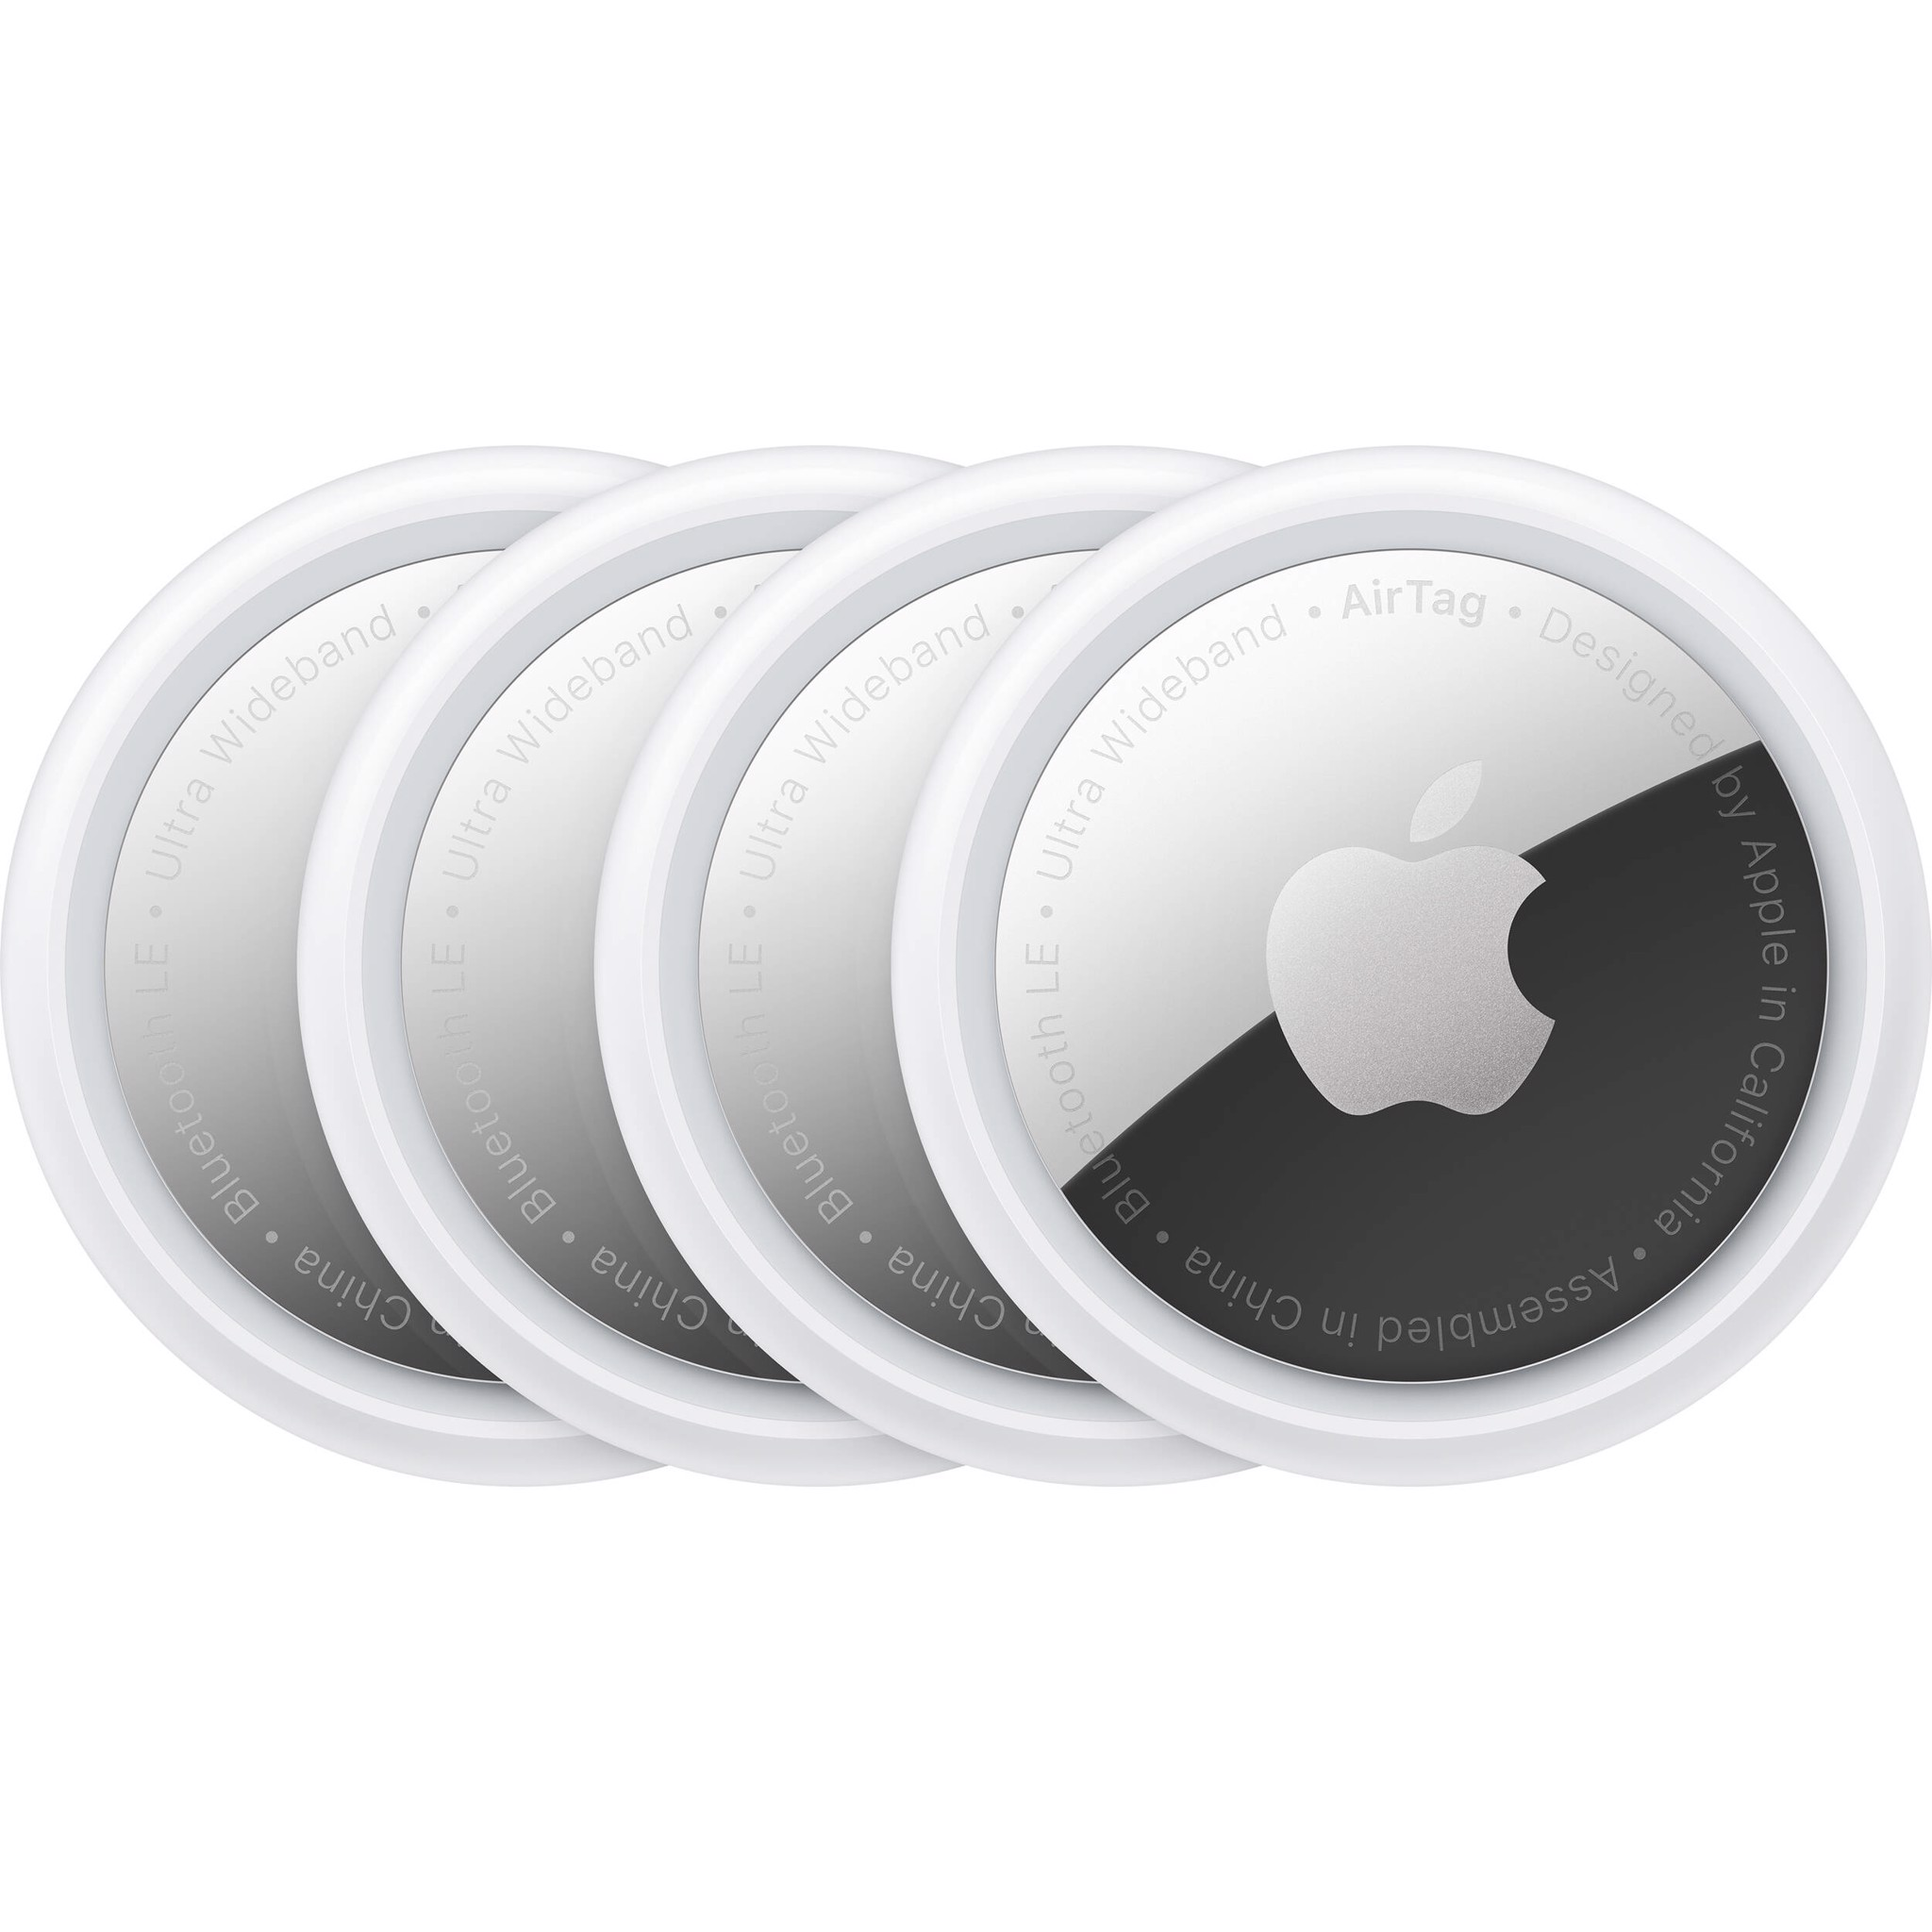 Apple AirTag Pack